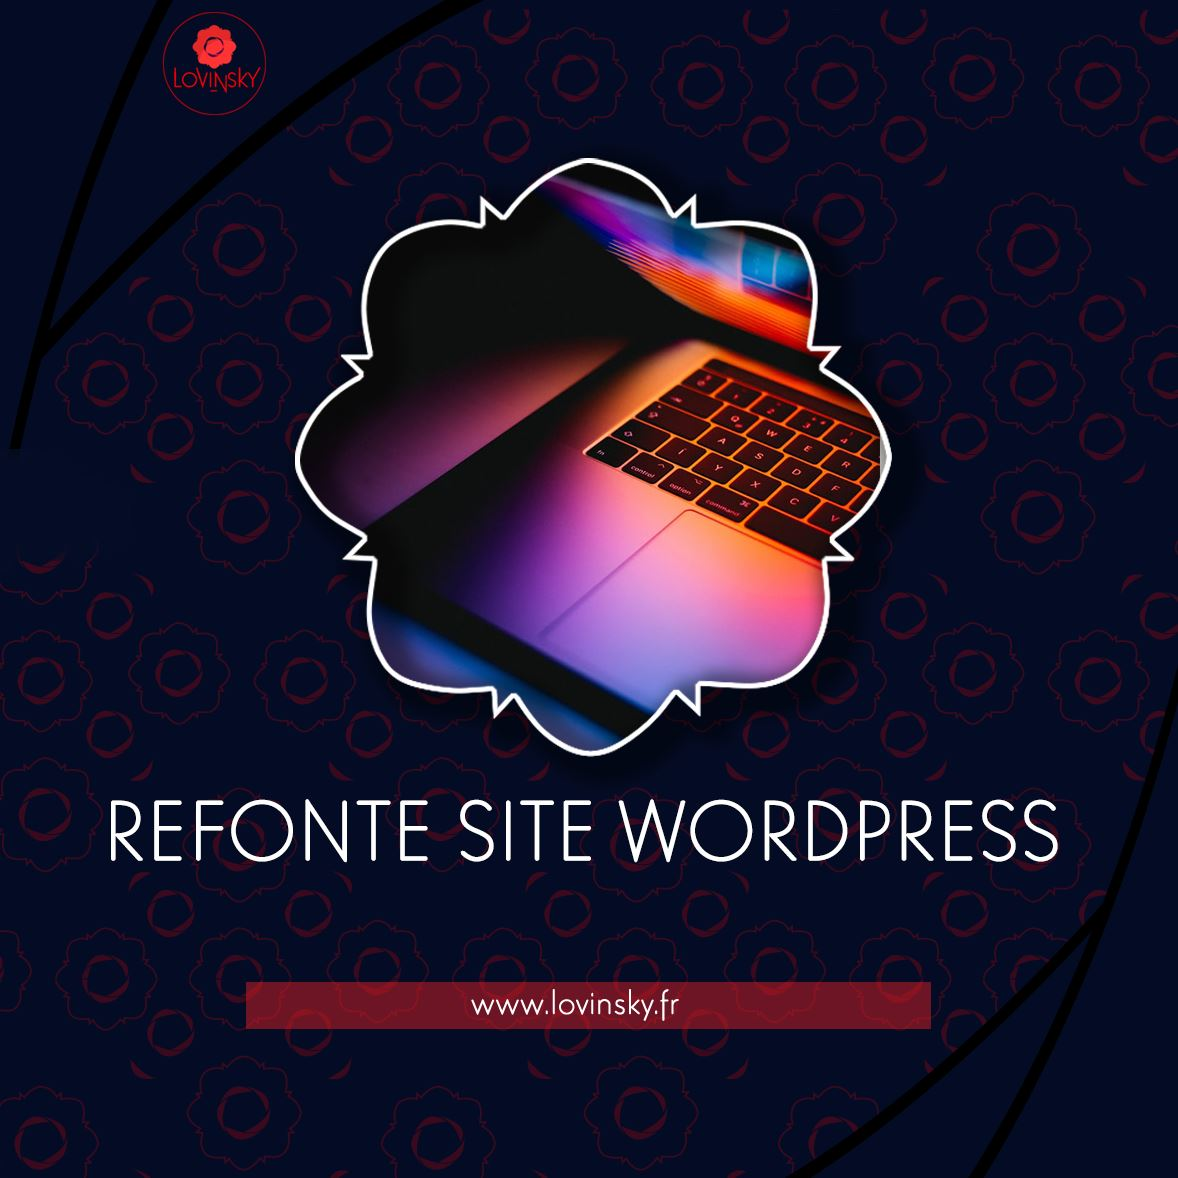 Refonte site wordpress